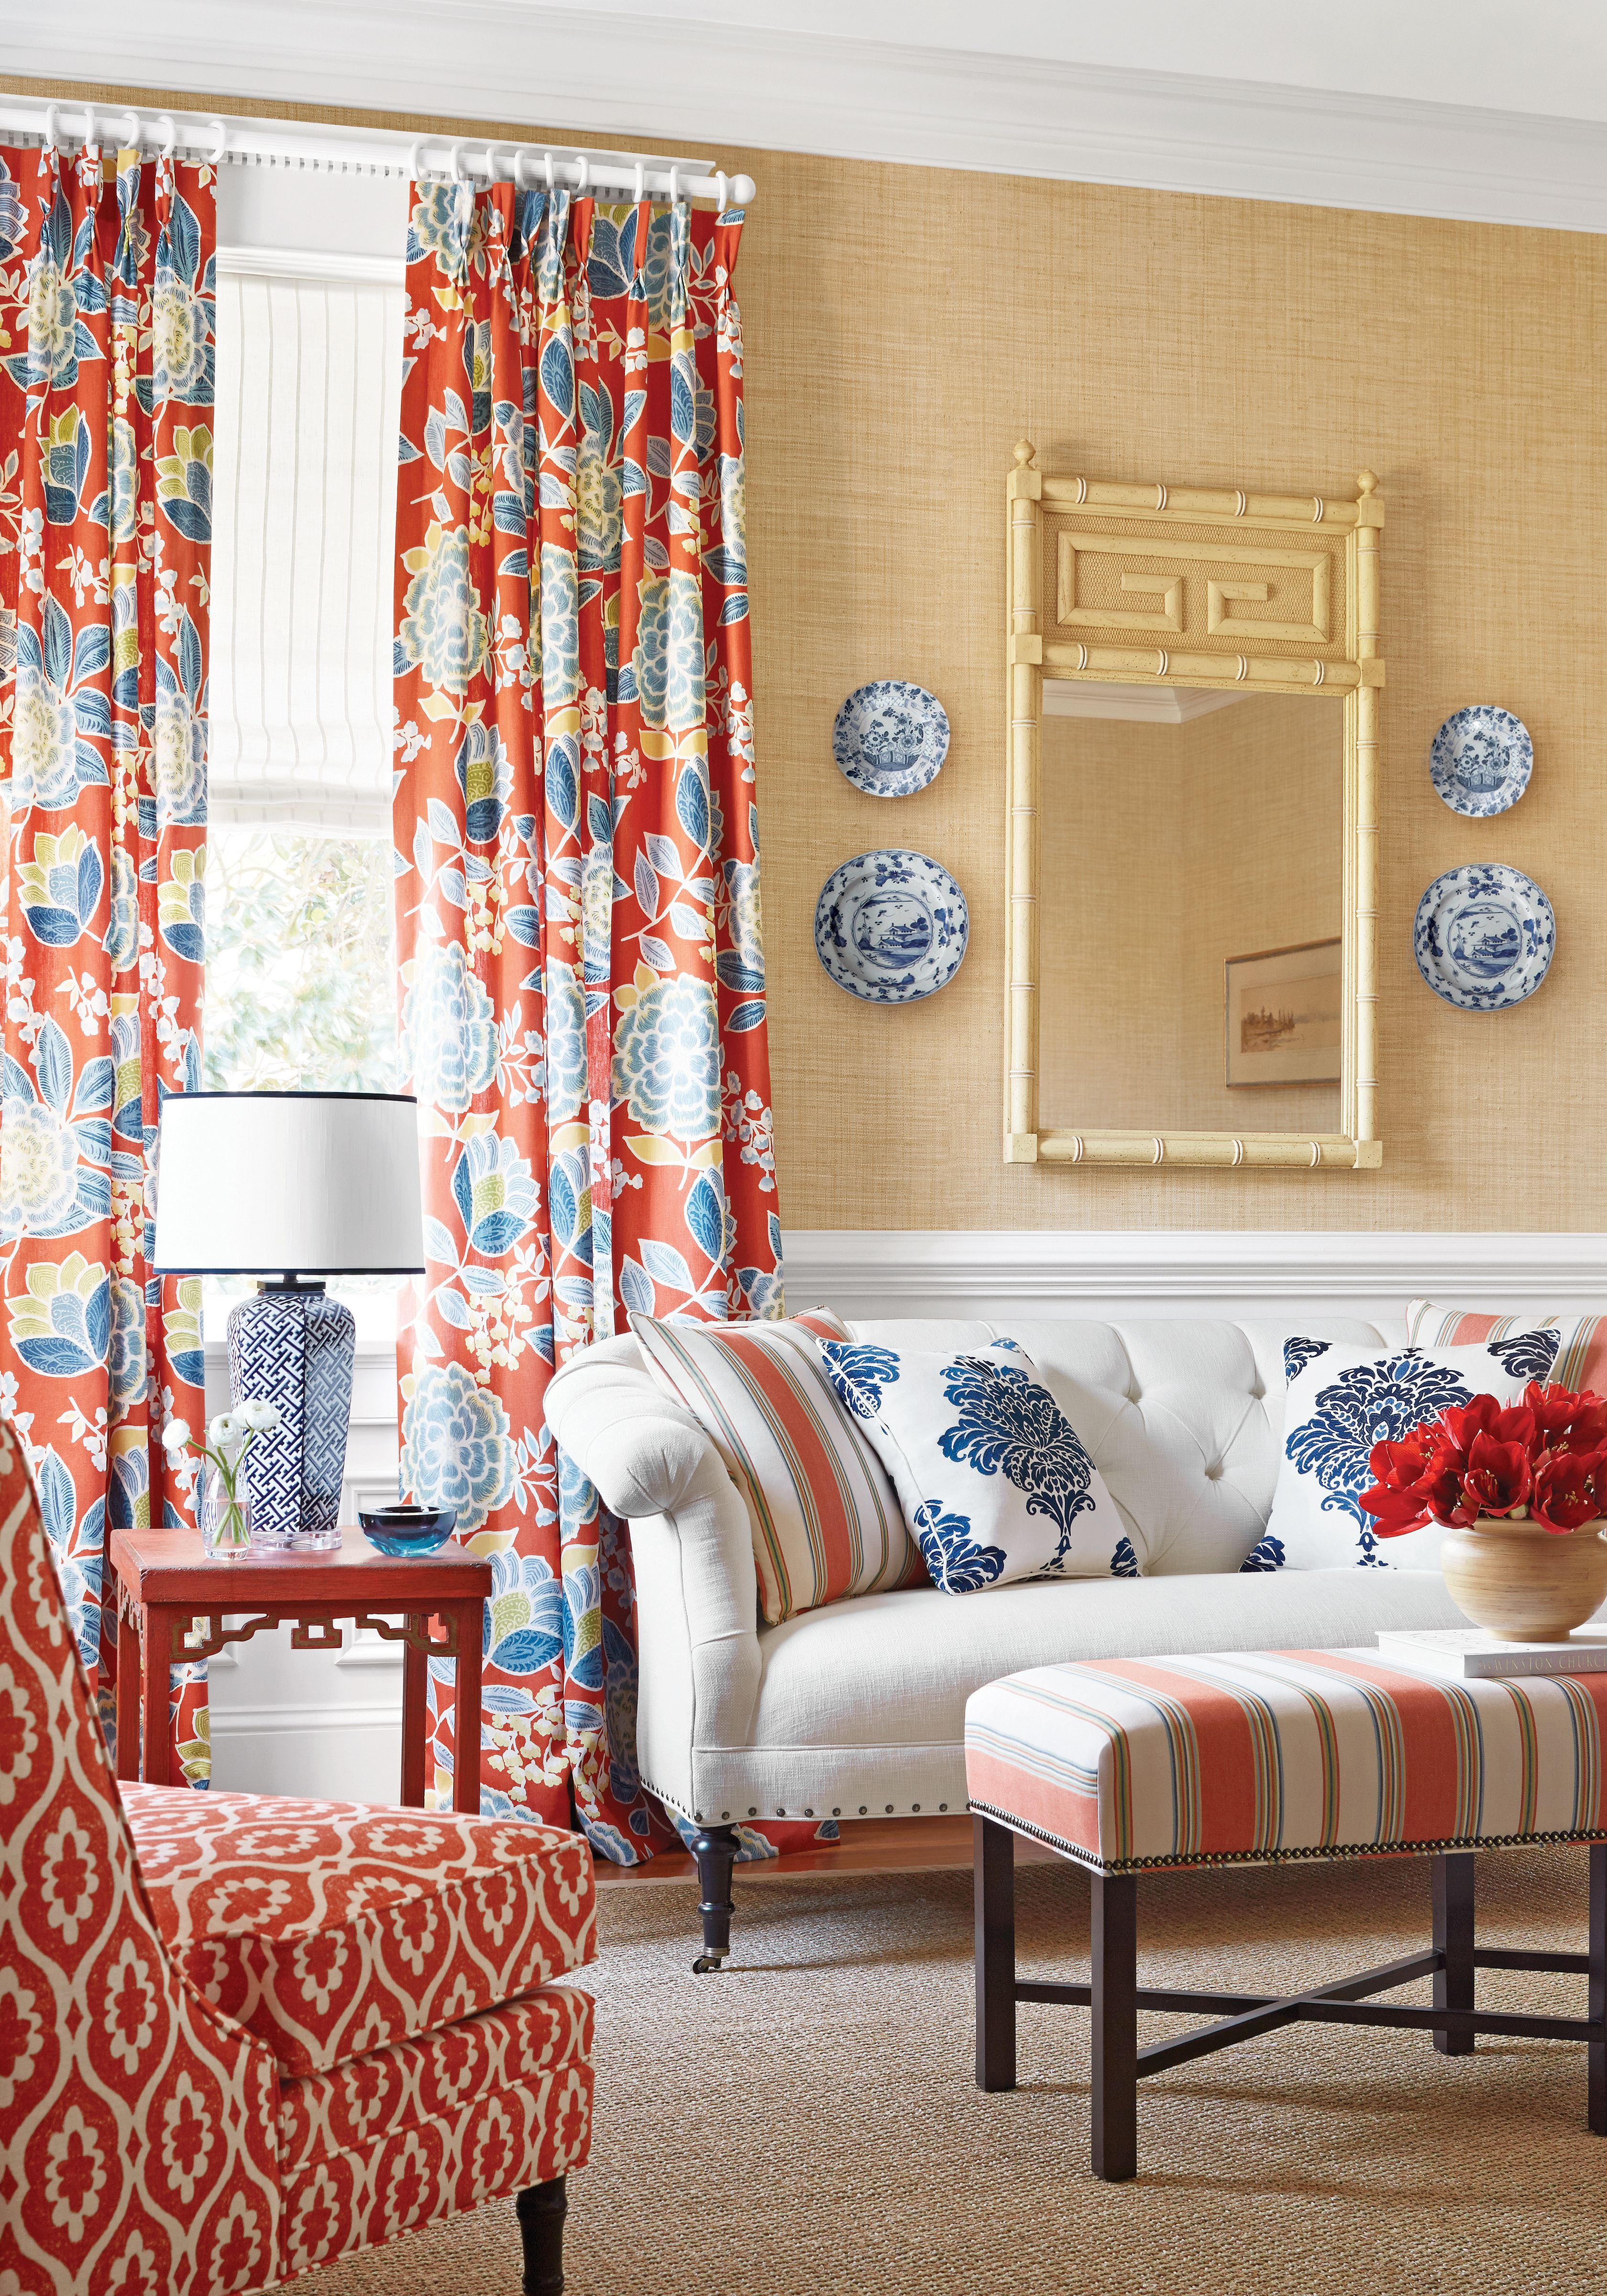 Pin By Vicki Tsitlidis On Decor Ideas Home Living Room Home Decor Room Decor #red #white #and #blue #living #room